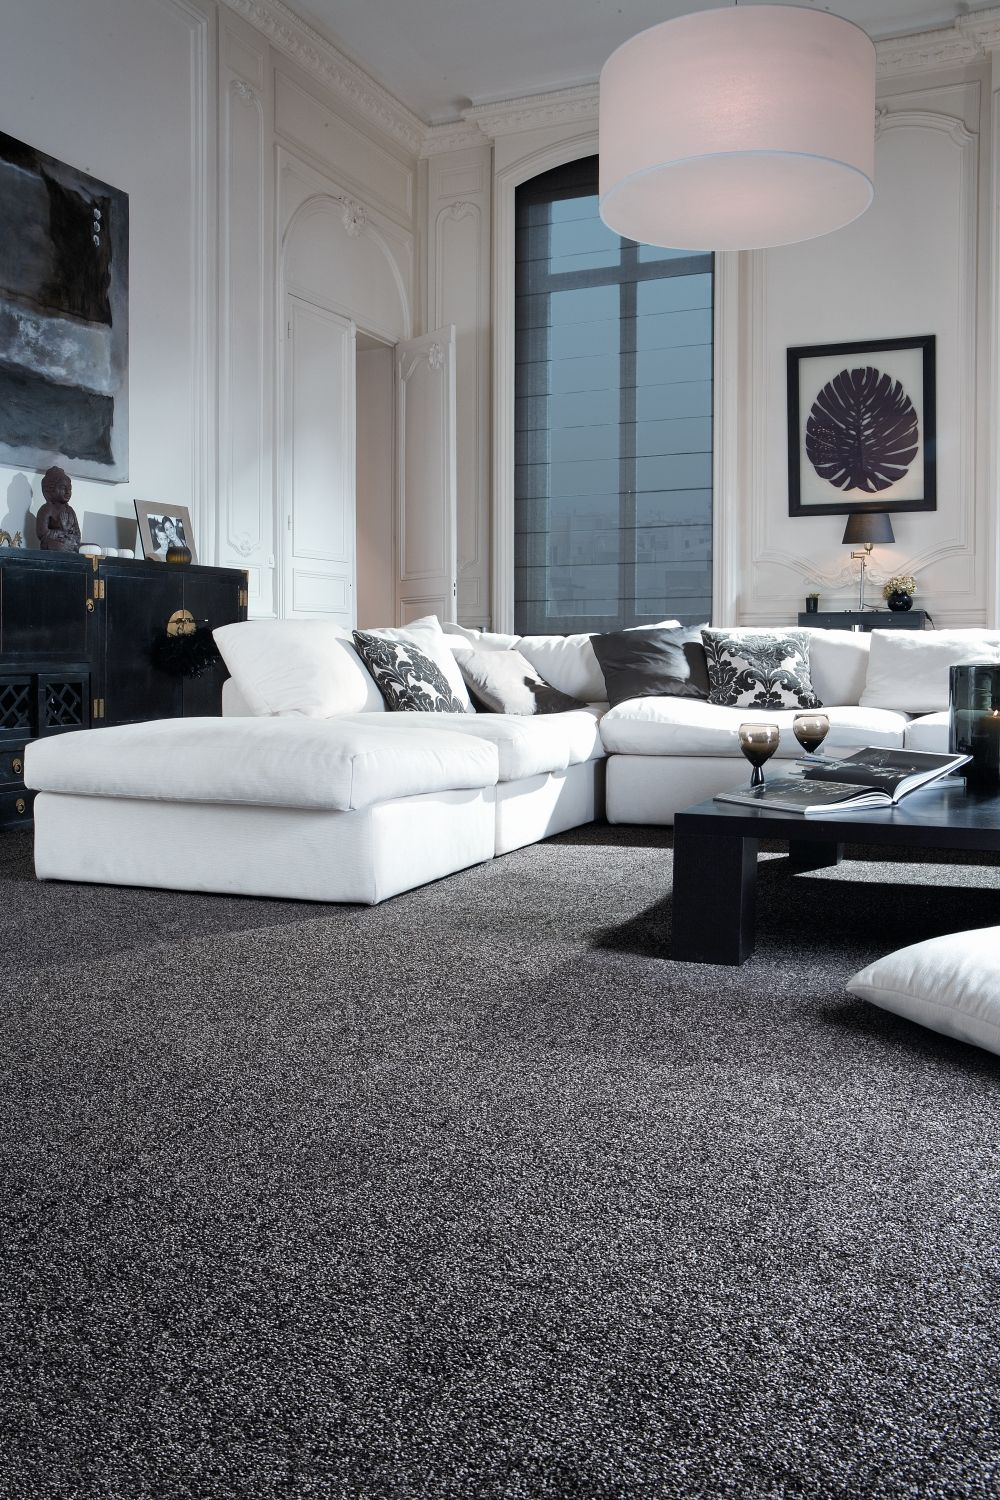 10 Nice Carpeting Ideas For Living Room sophisticated black and white living room idea monochrome trendy 2020